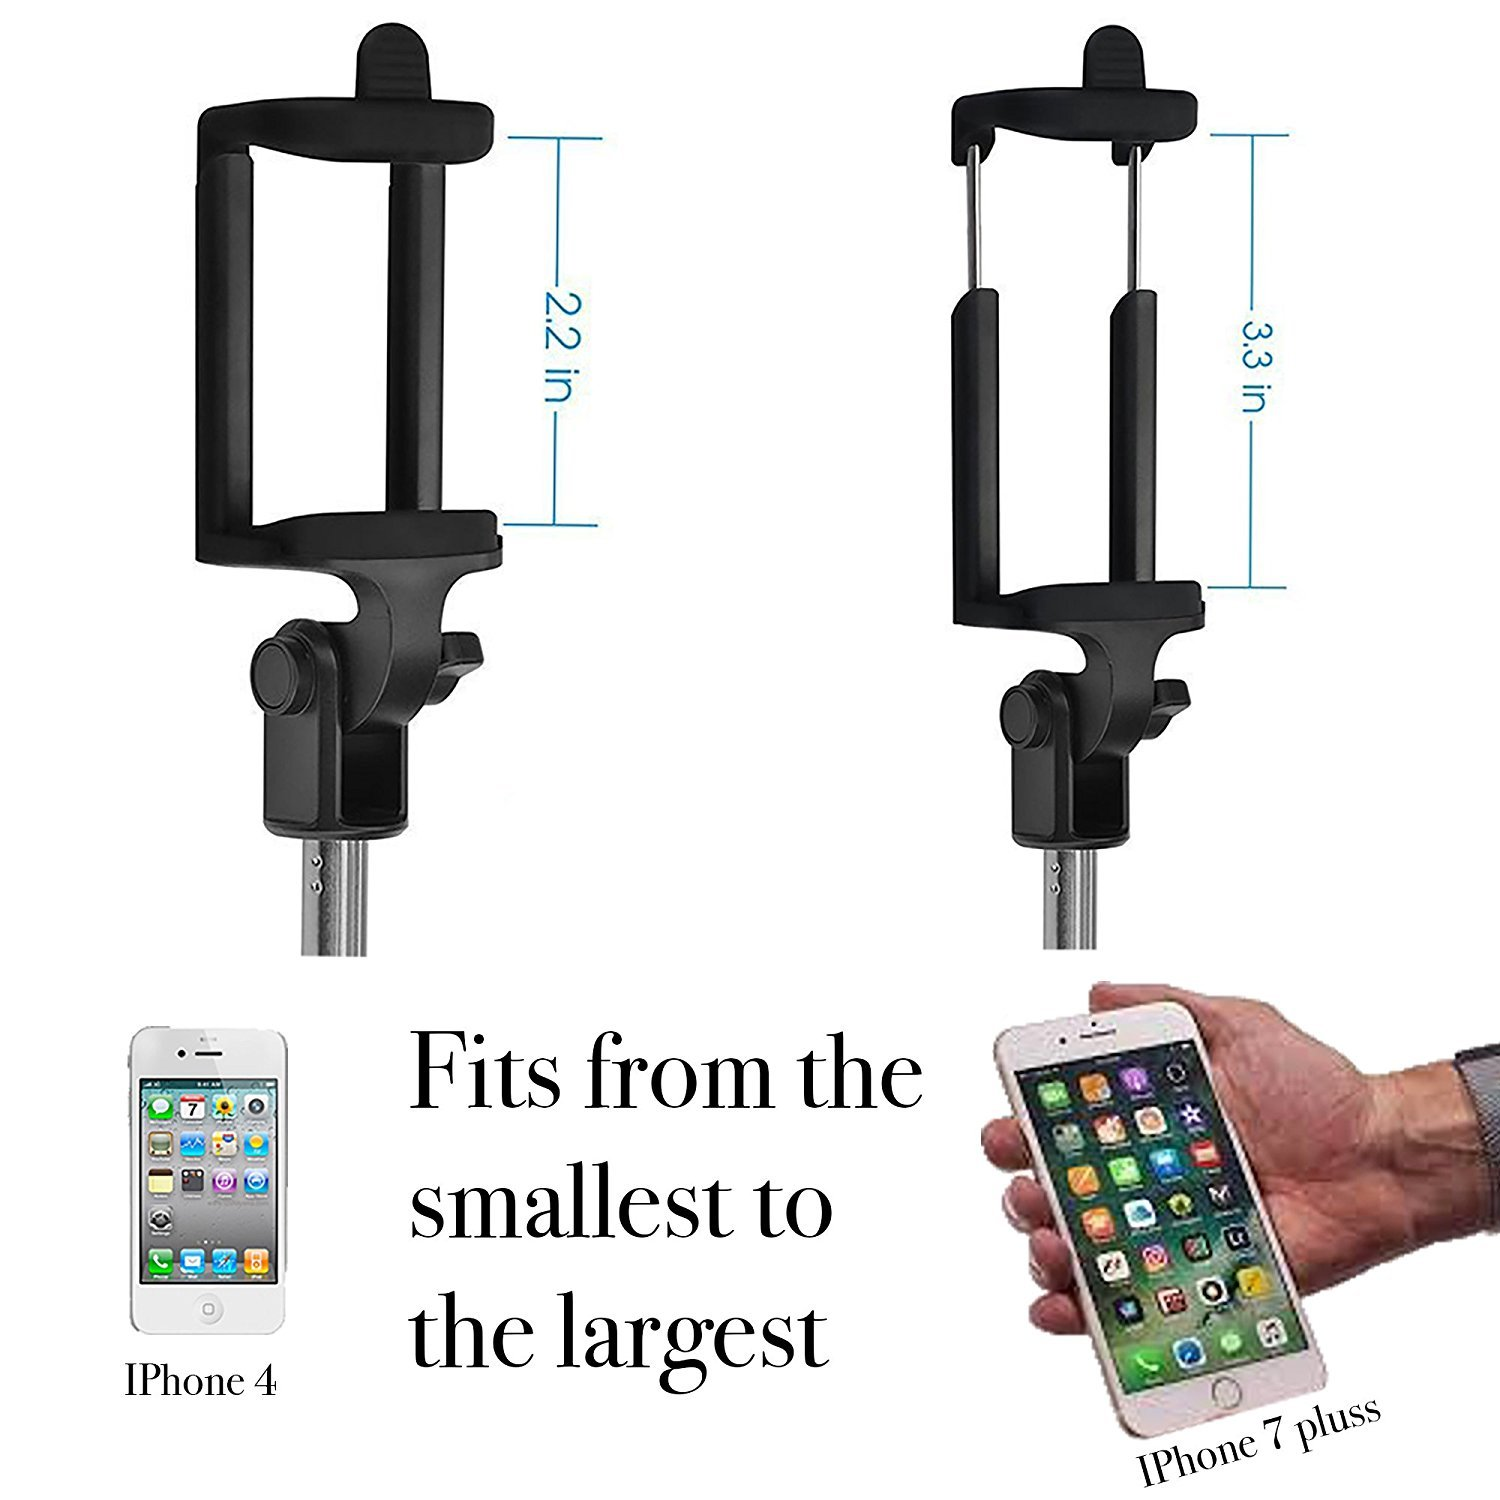 Bluetooth Selfie Stick Tripod, BOKIN wireless Selfie Stick for iPhone 6/iPhone 6 Plus/iPhone 7/iPhone 7 plus/iPhone 8/iPhone 8 plus/iPhone X and Samsung note 8/S8 and other Android Phones by BOKIN (Image #6)